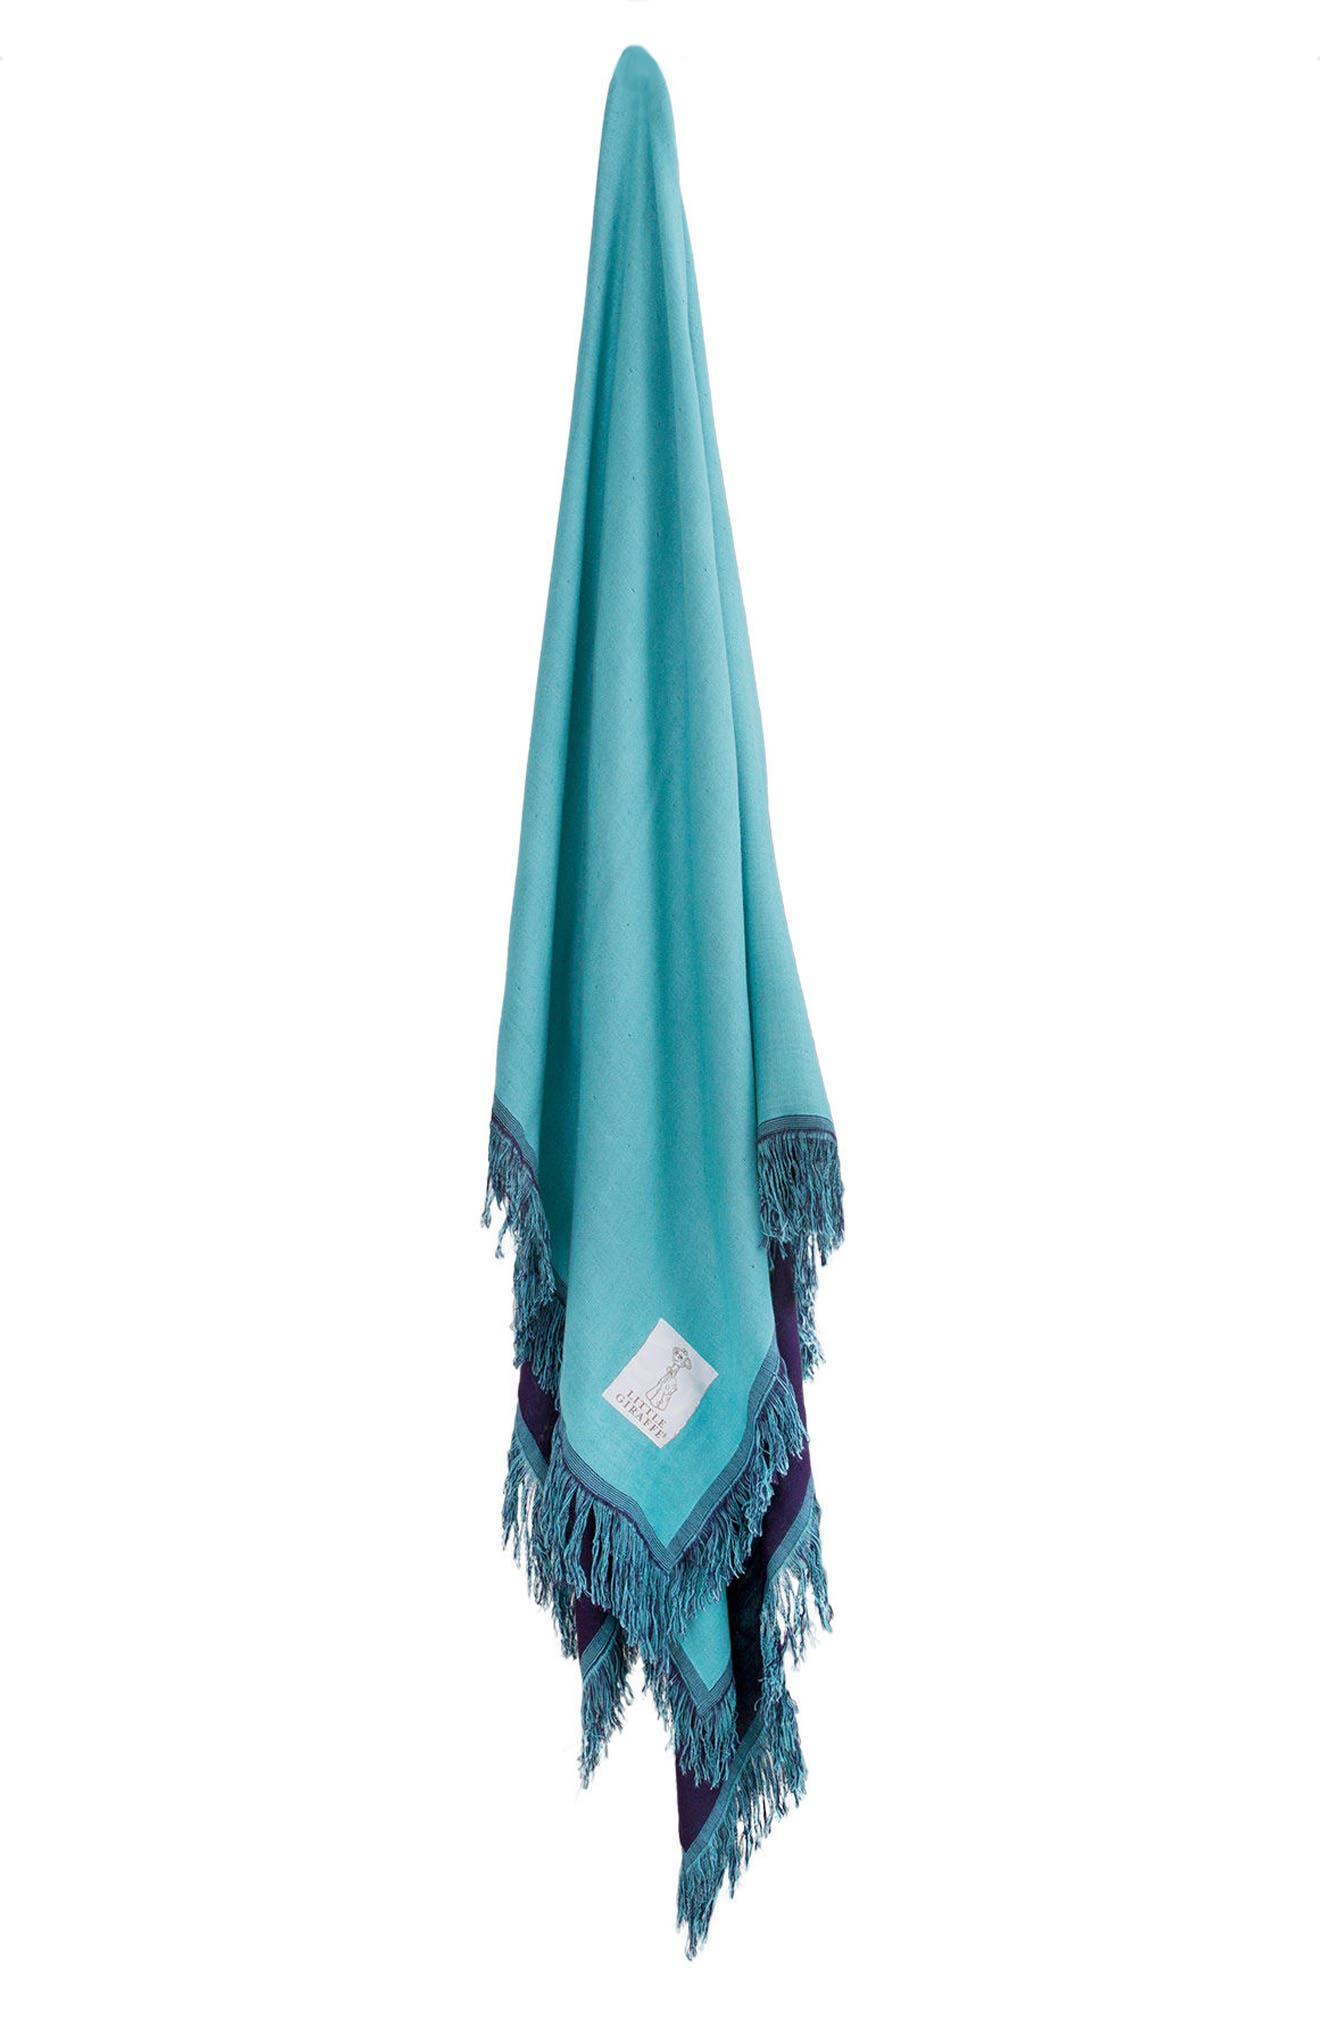 Marrakech Fringe Blanket,                         Main,                         color, DENIM/ TEAL